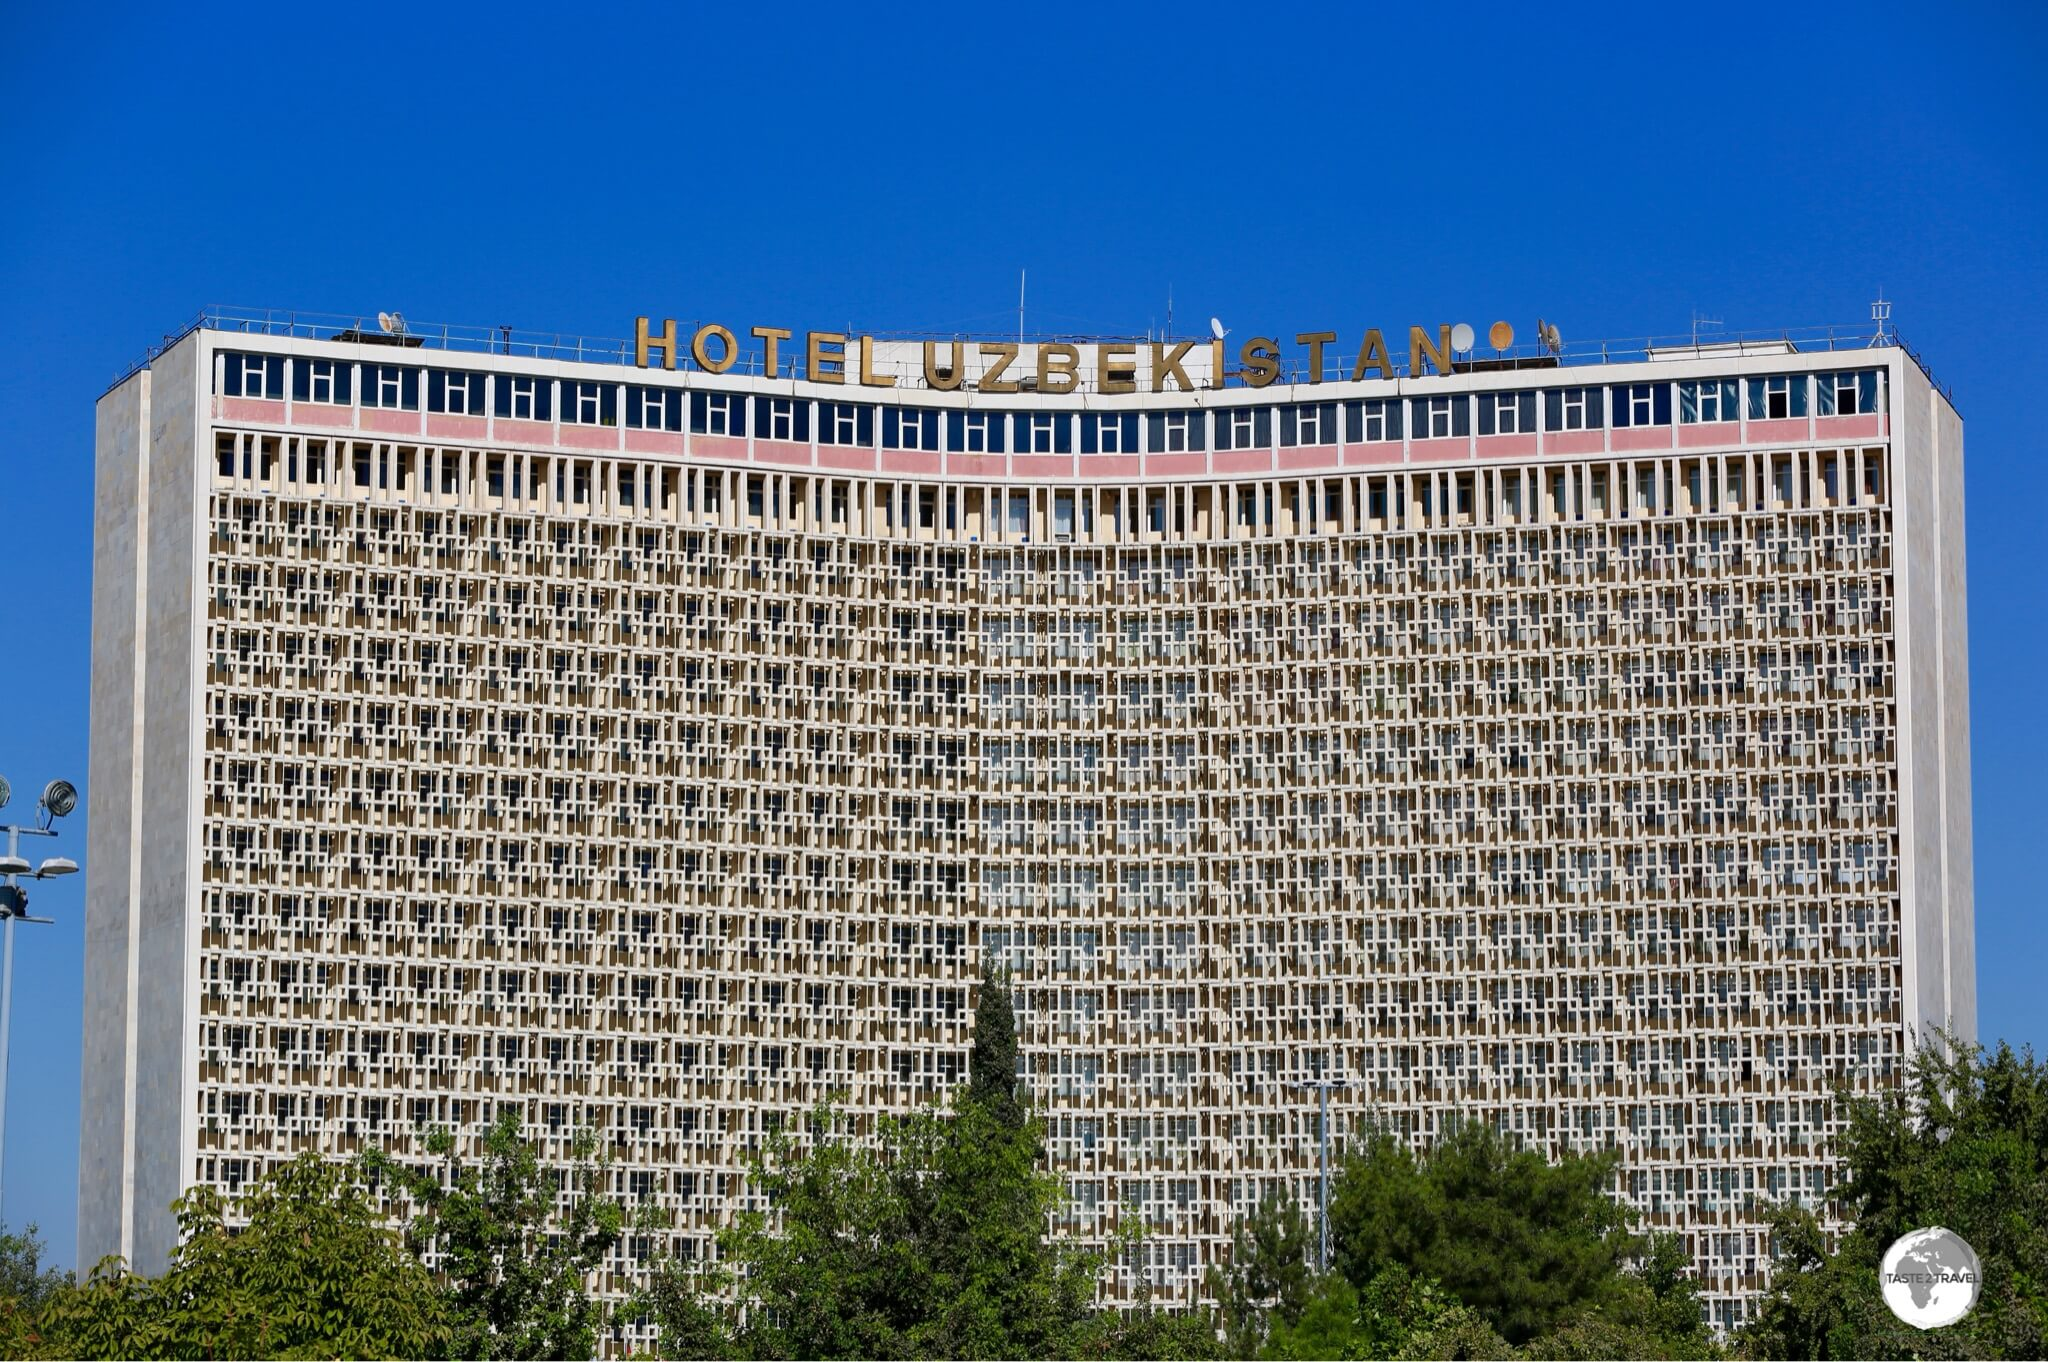 During Soviet times, each capital had its own behemoth hotel which was named after the republic. The Hotel Uzbekistan once served as the main hotel in Tashkent for visitors travelling with In-tourist.